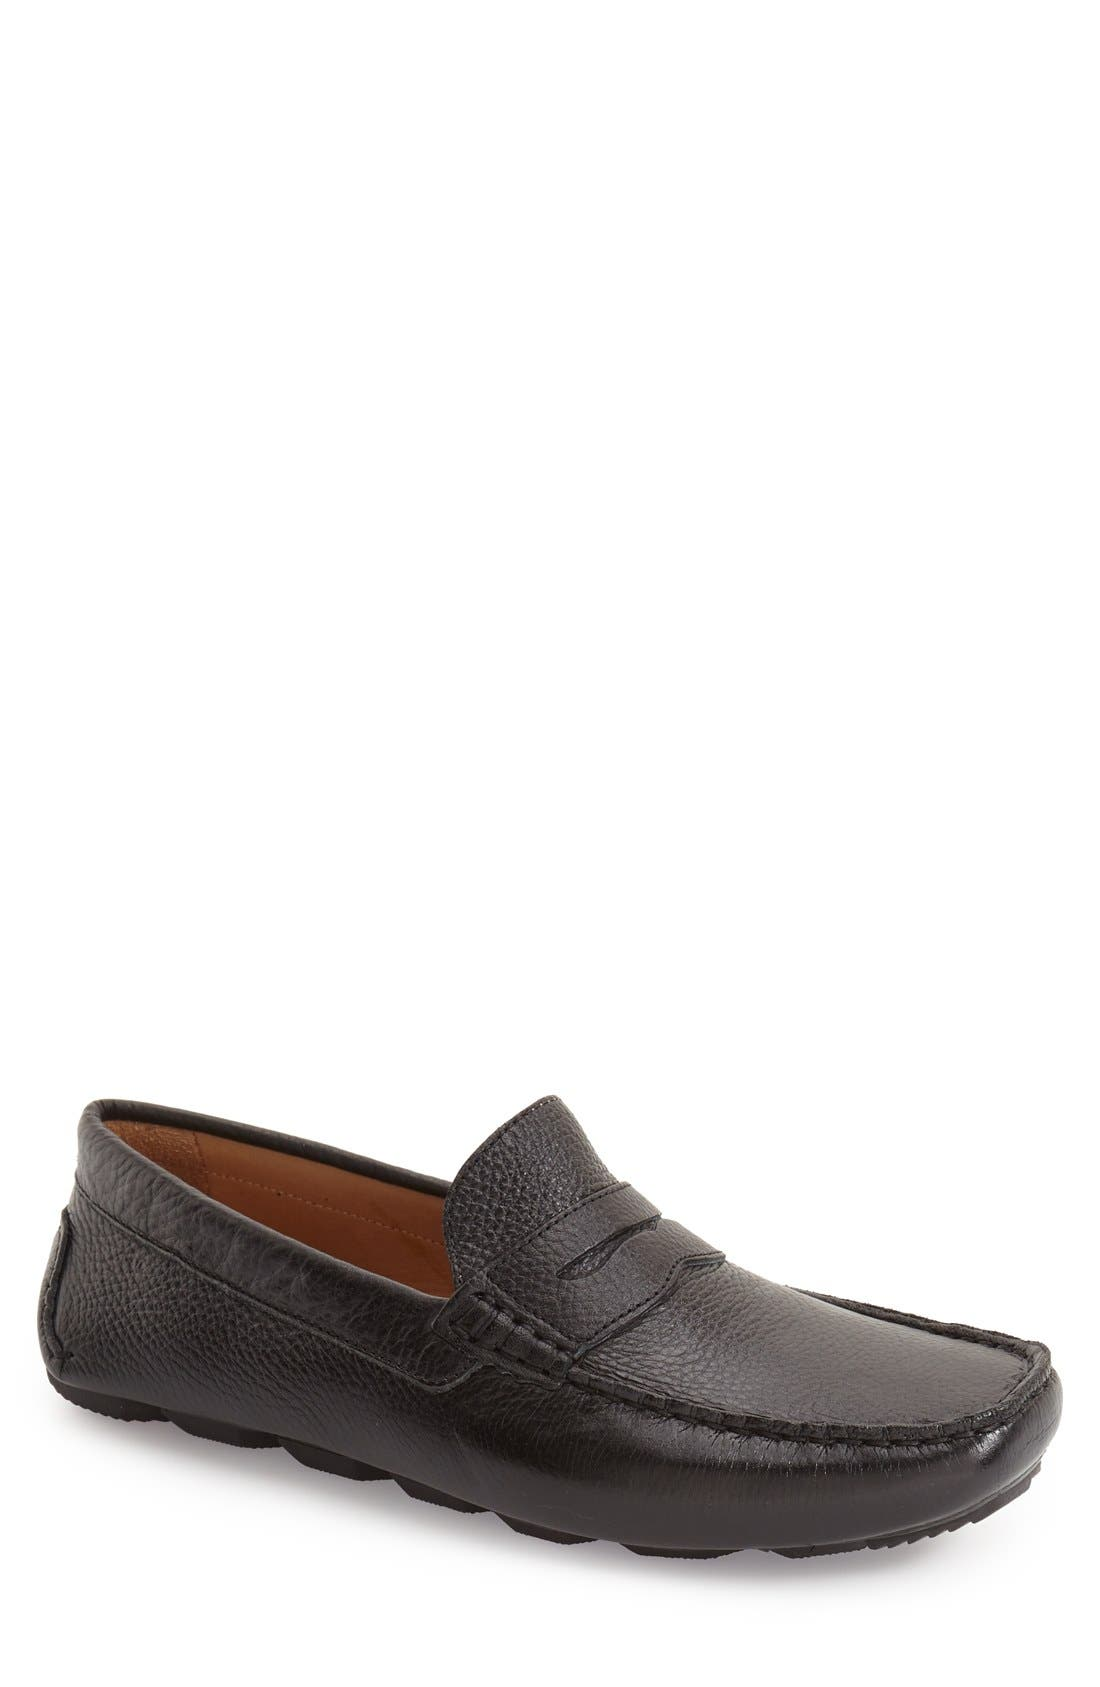 Main Image - 1901 'Bermuda' Penny Loafer (Men)